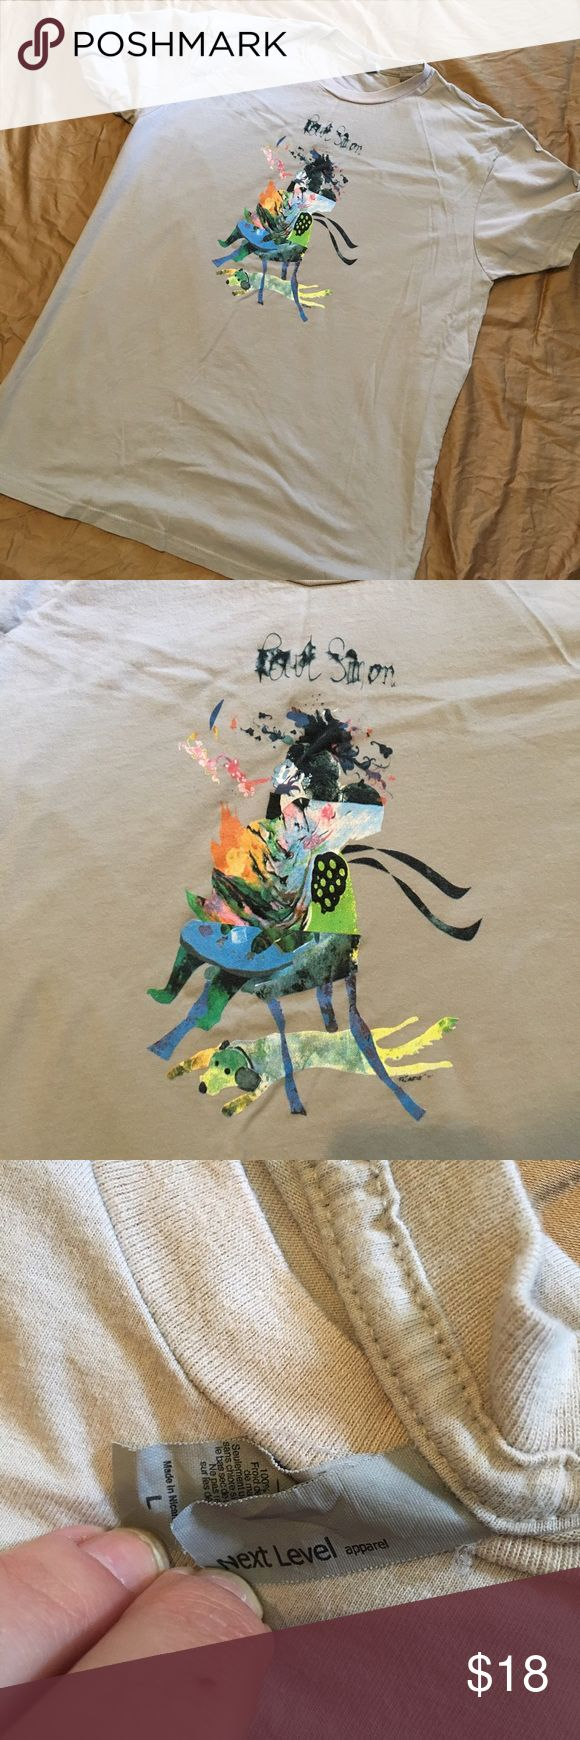 Official Paul Simon concert tee Tour 2016. Beige tee with multi color design. Make an offer! 30% off bundles of two or more! Shirts Tees - Short Sleeve